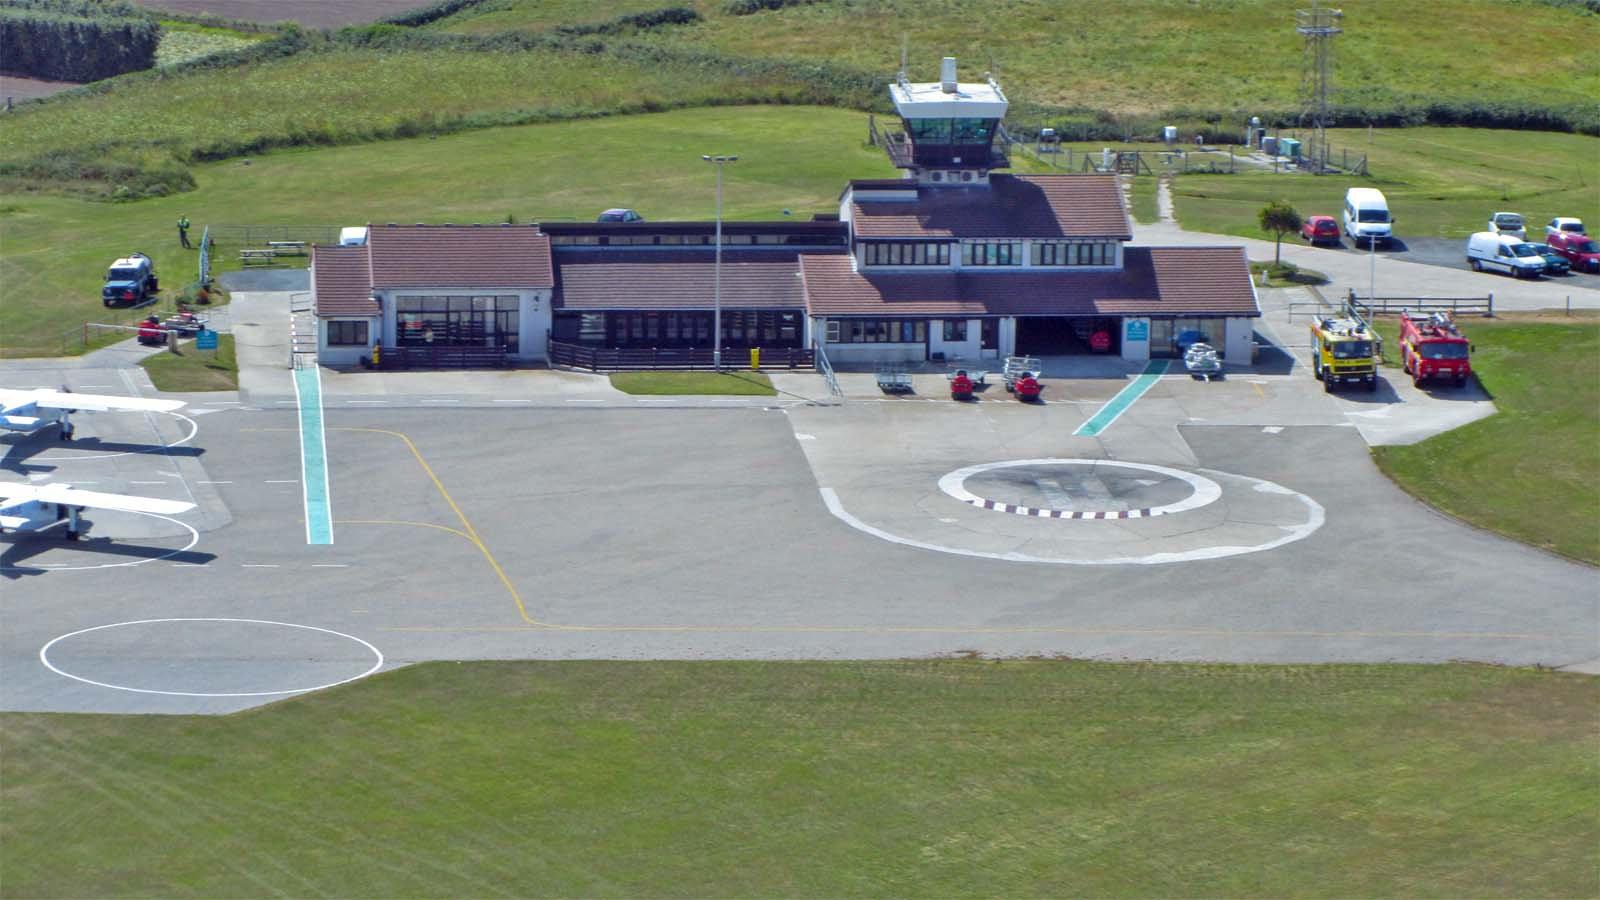 airport terminal from above